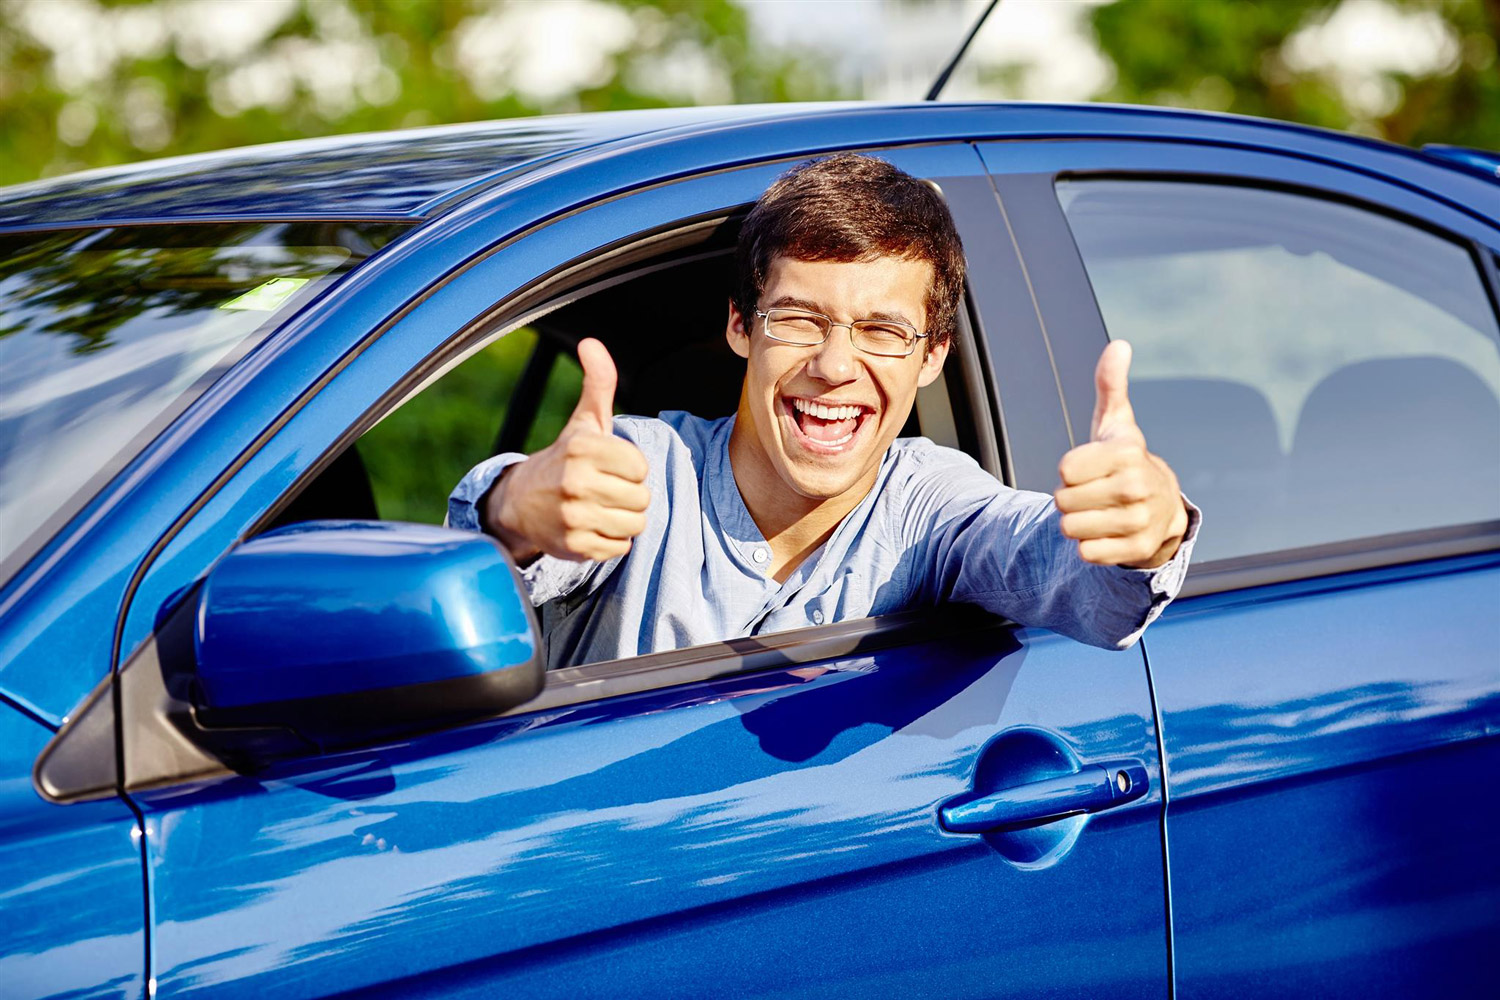 A young adult celebrates passing their driving test